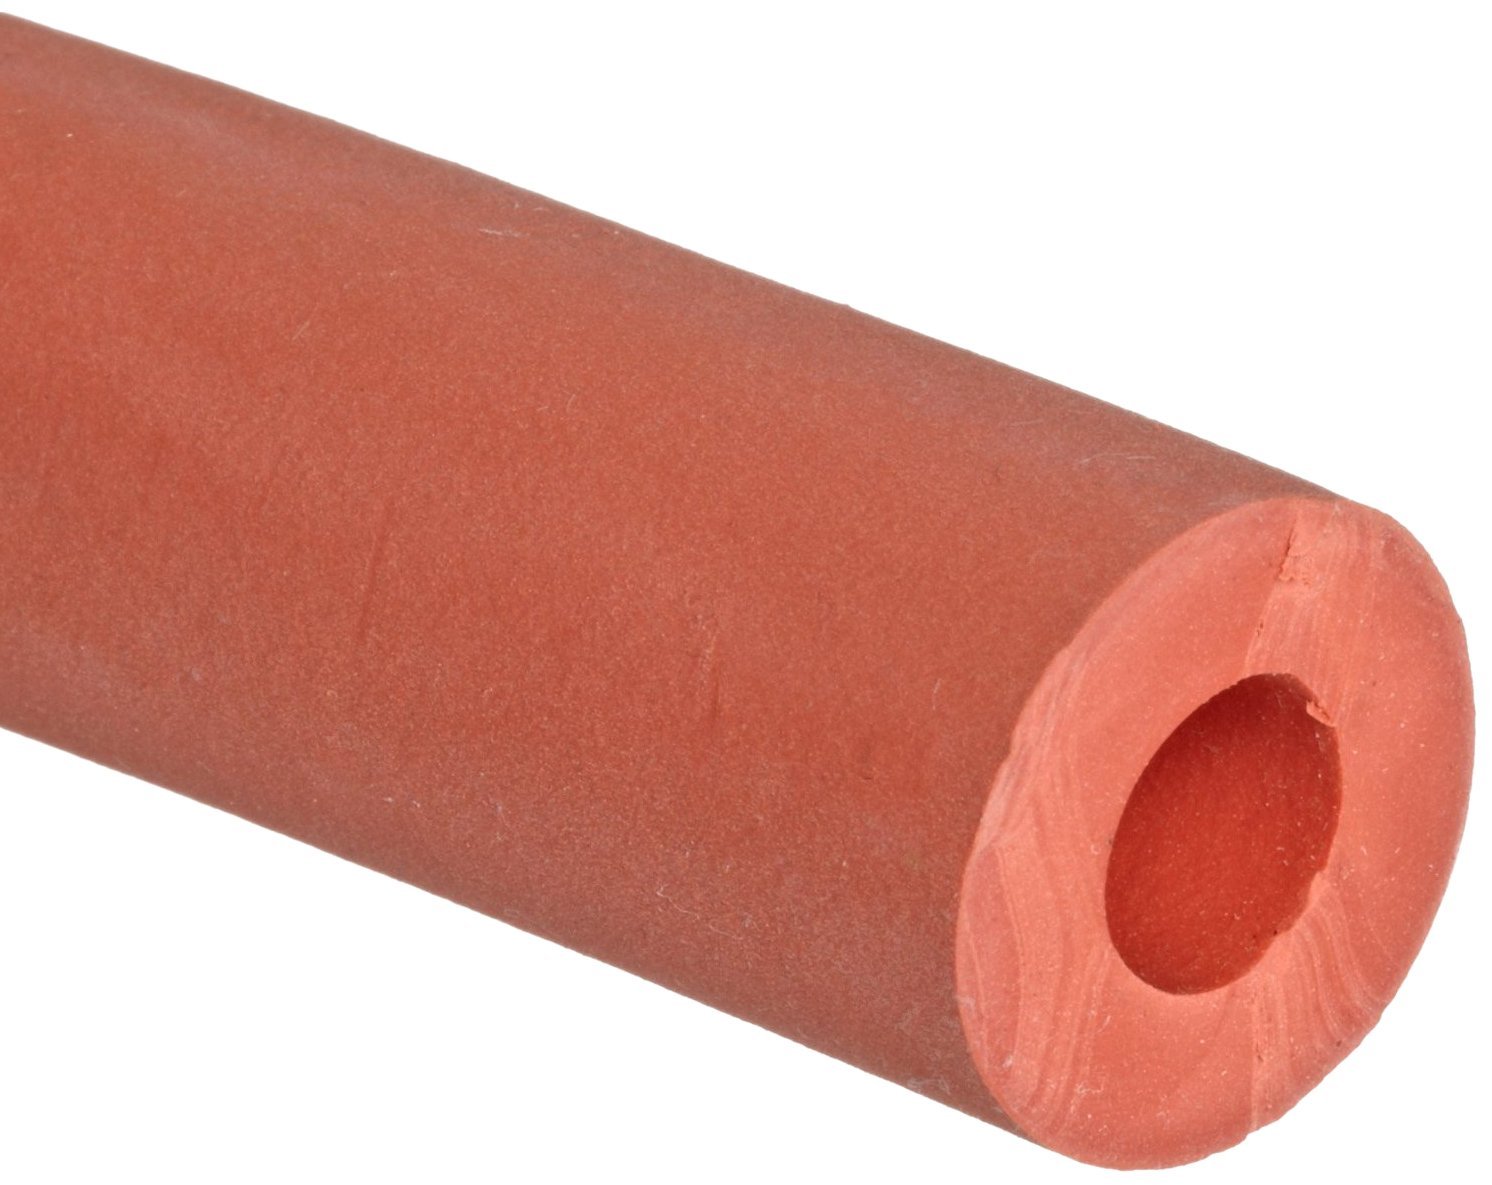 Thomas 1887 Gum Rubber Red Extruded Vacuum Tubing, 1-1/8'' OD x 1/2'' ID x 5/16'' Wall Thick, 10' Length by Thomas